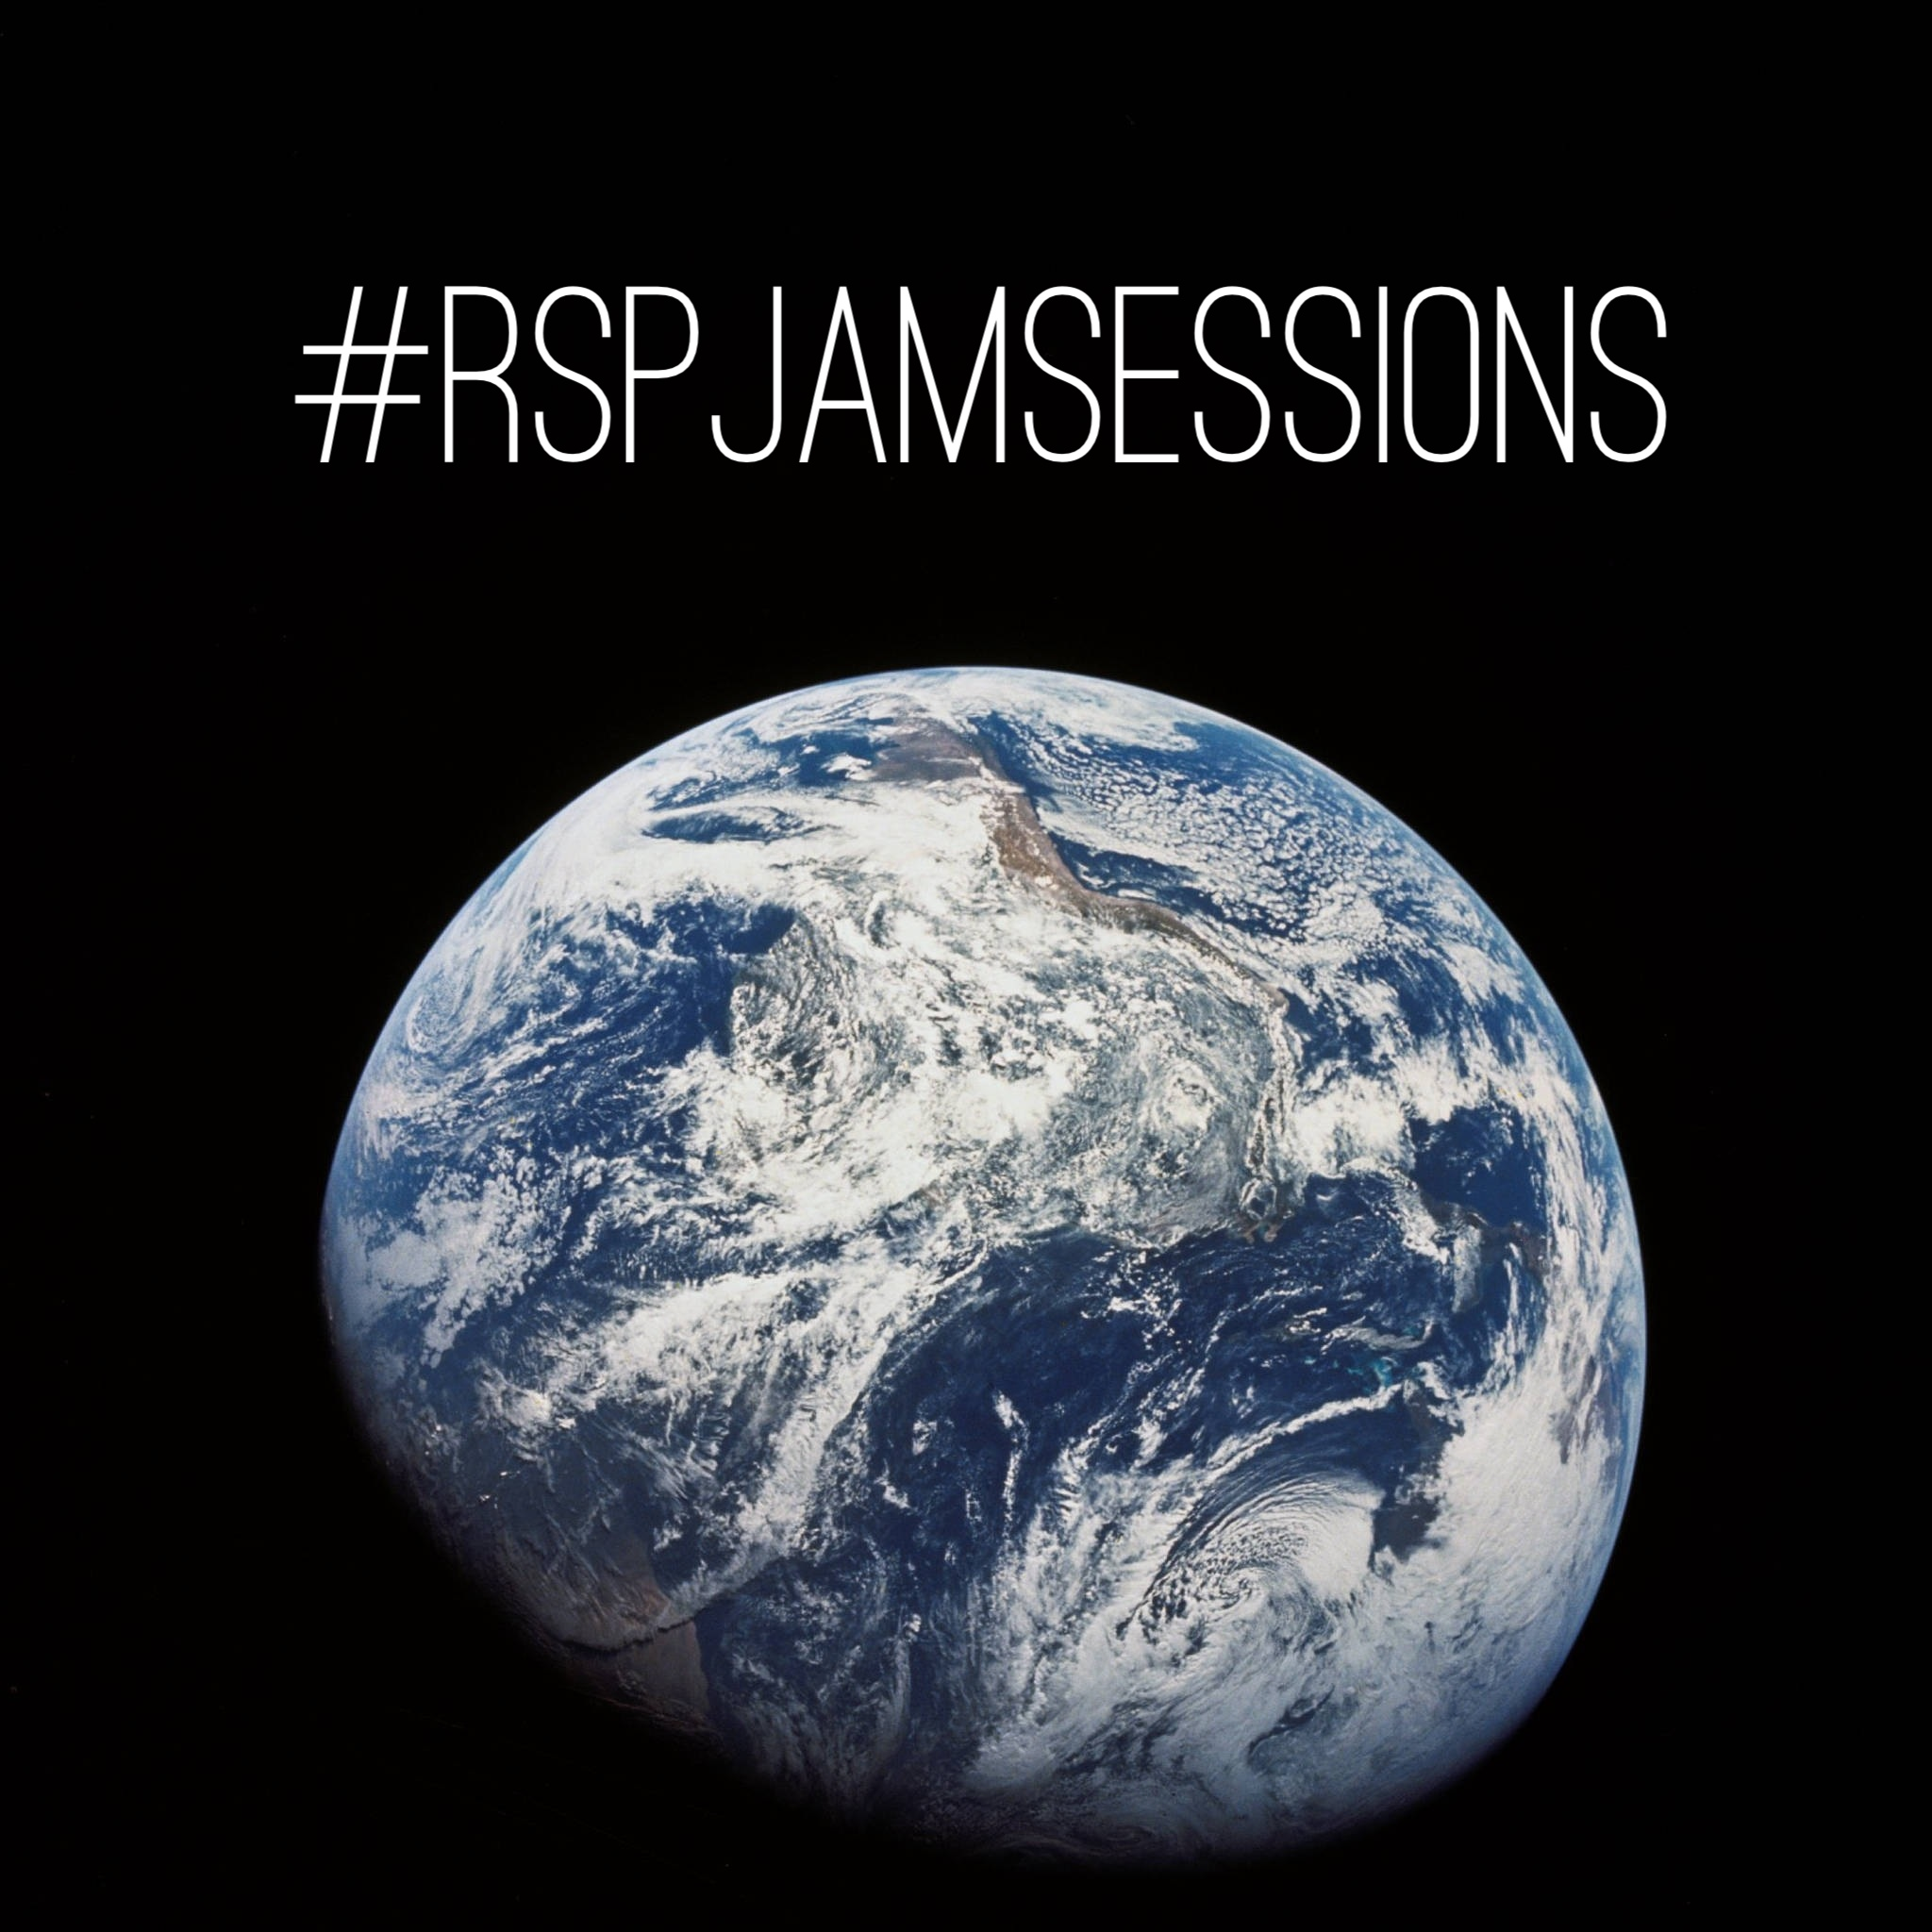 Jam with the Rock Star Principals on Twitter #RSPJamSessions